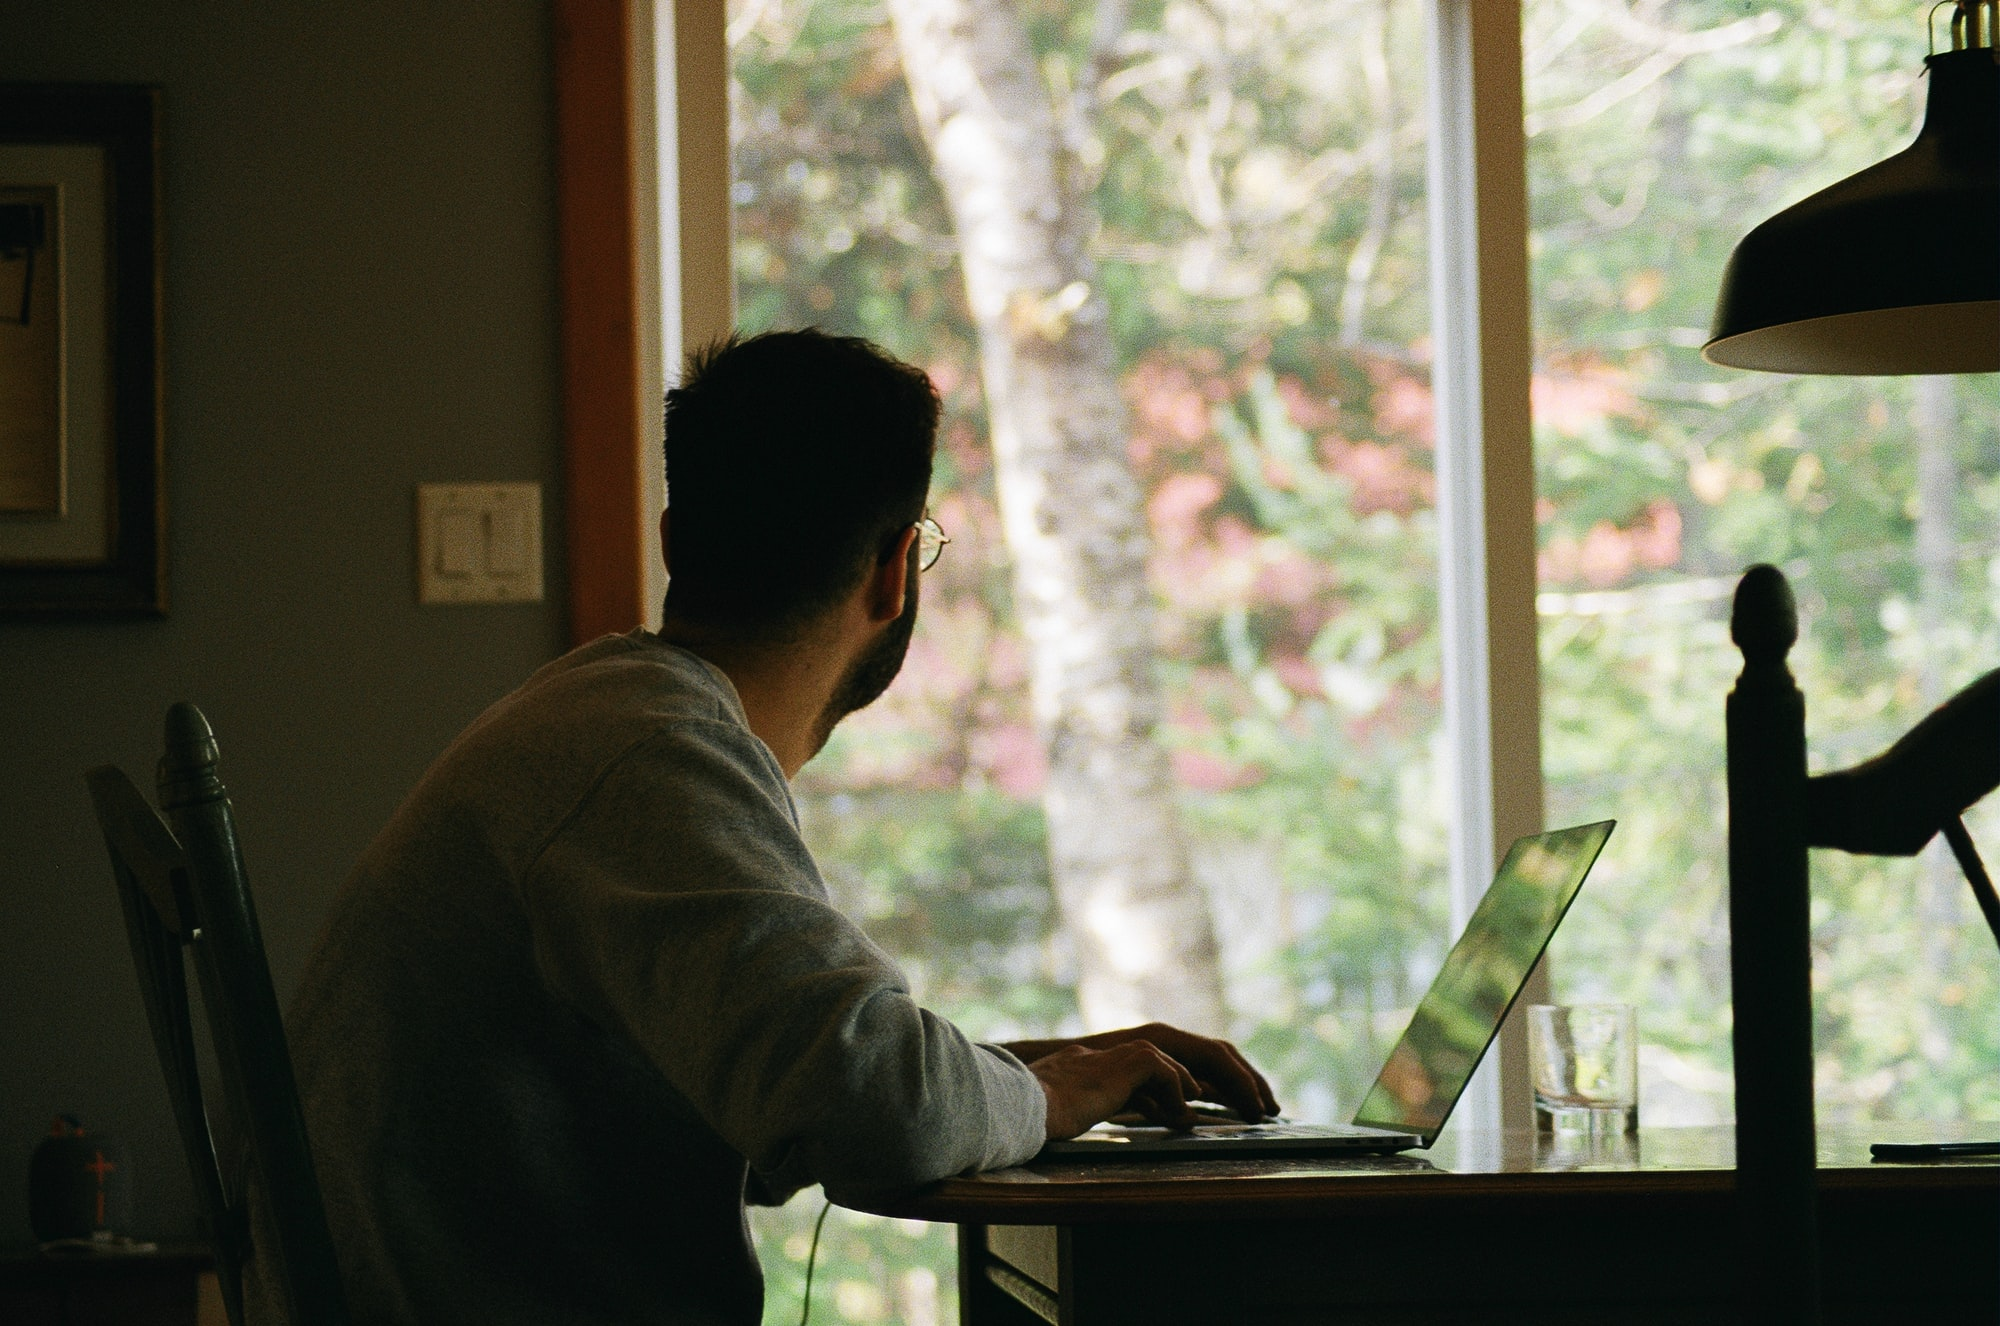 How to Develop a Remote Work Policy?